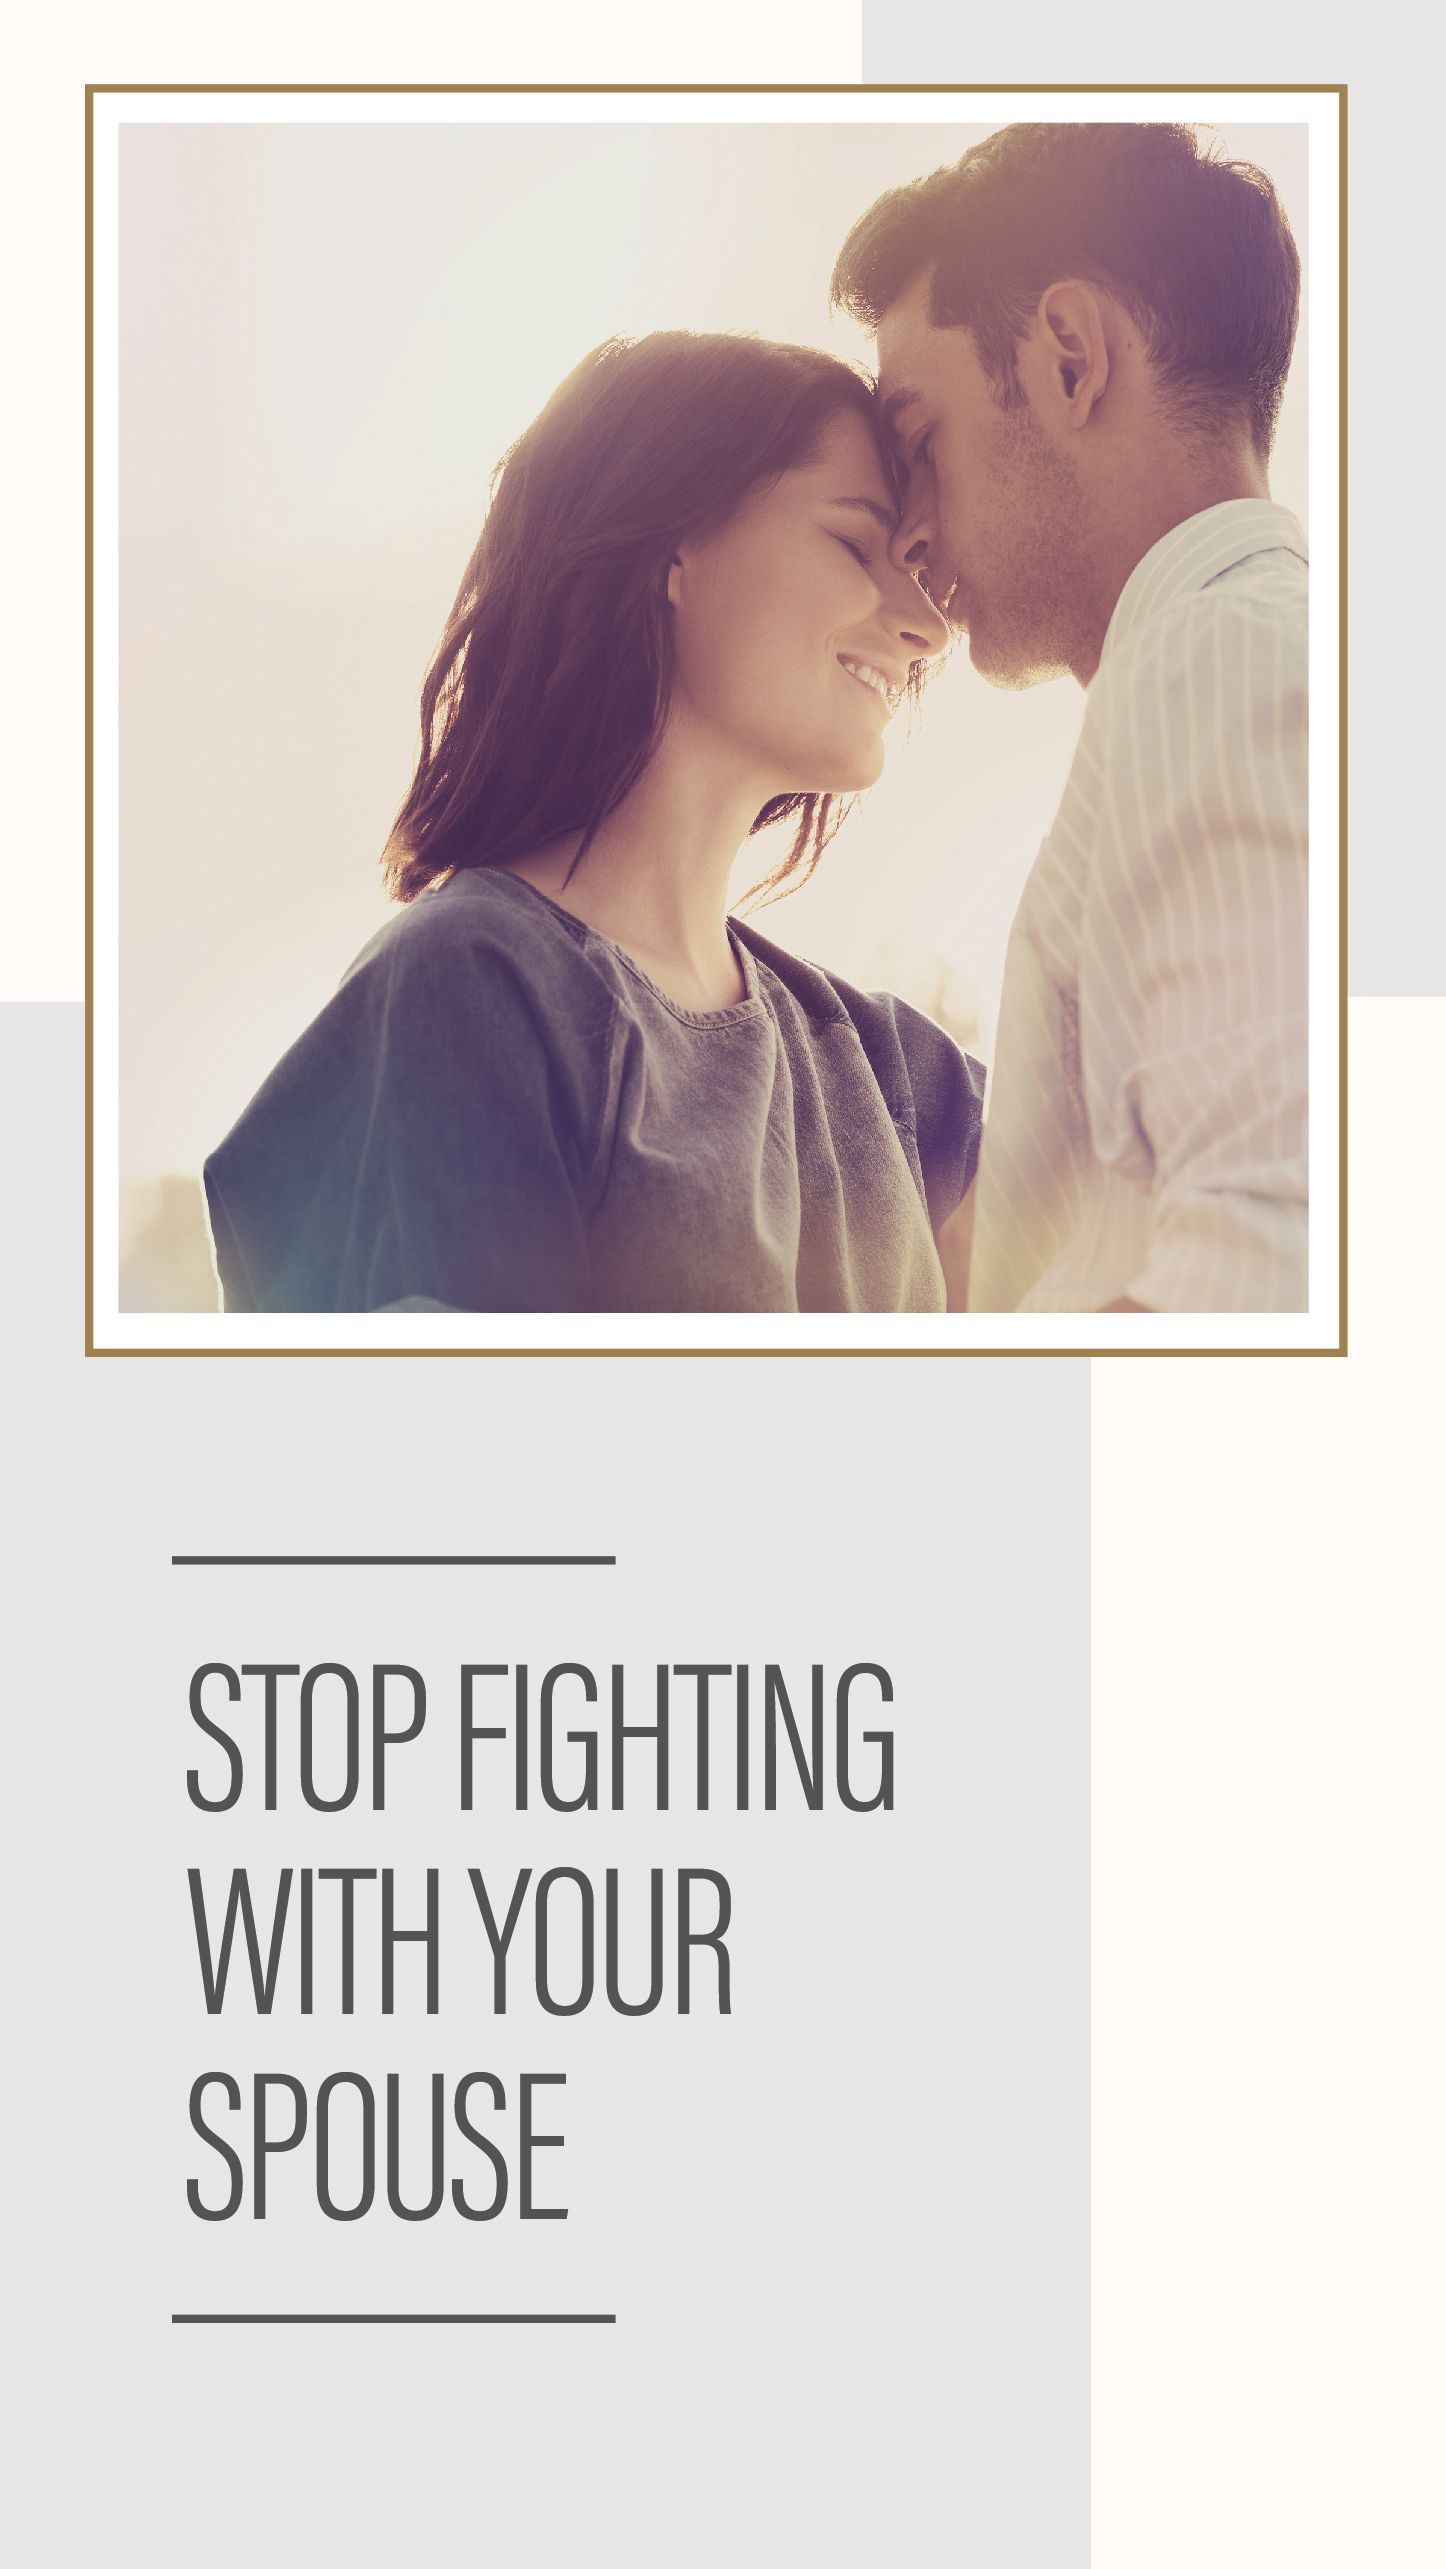 Stop Fighting With Your Spouse